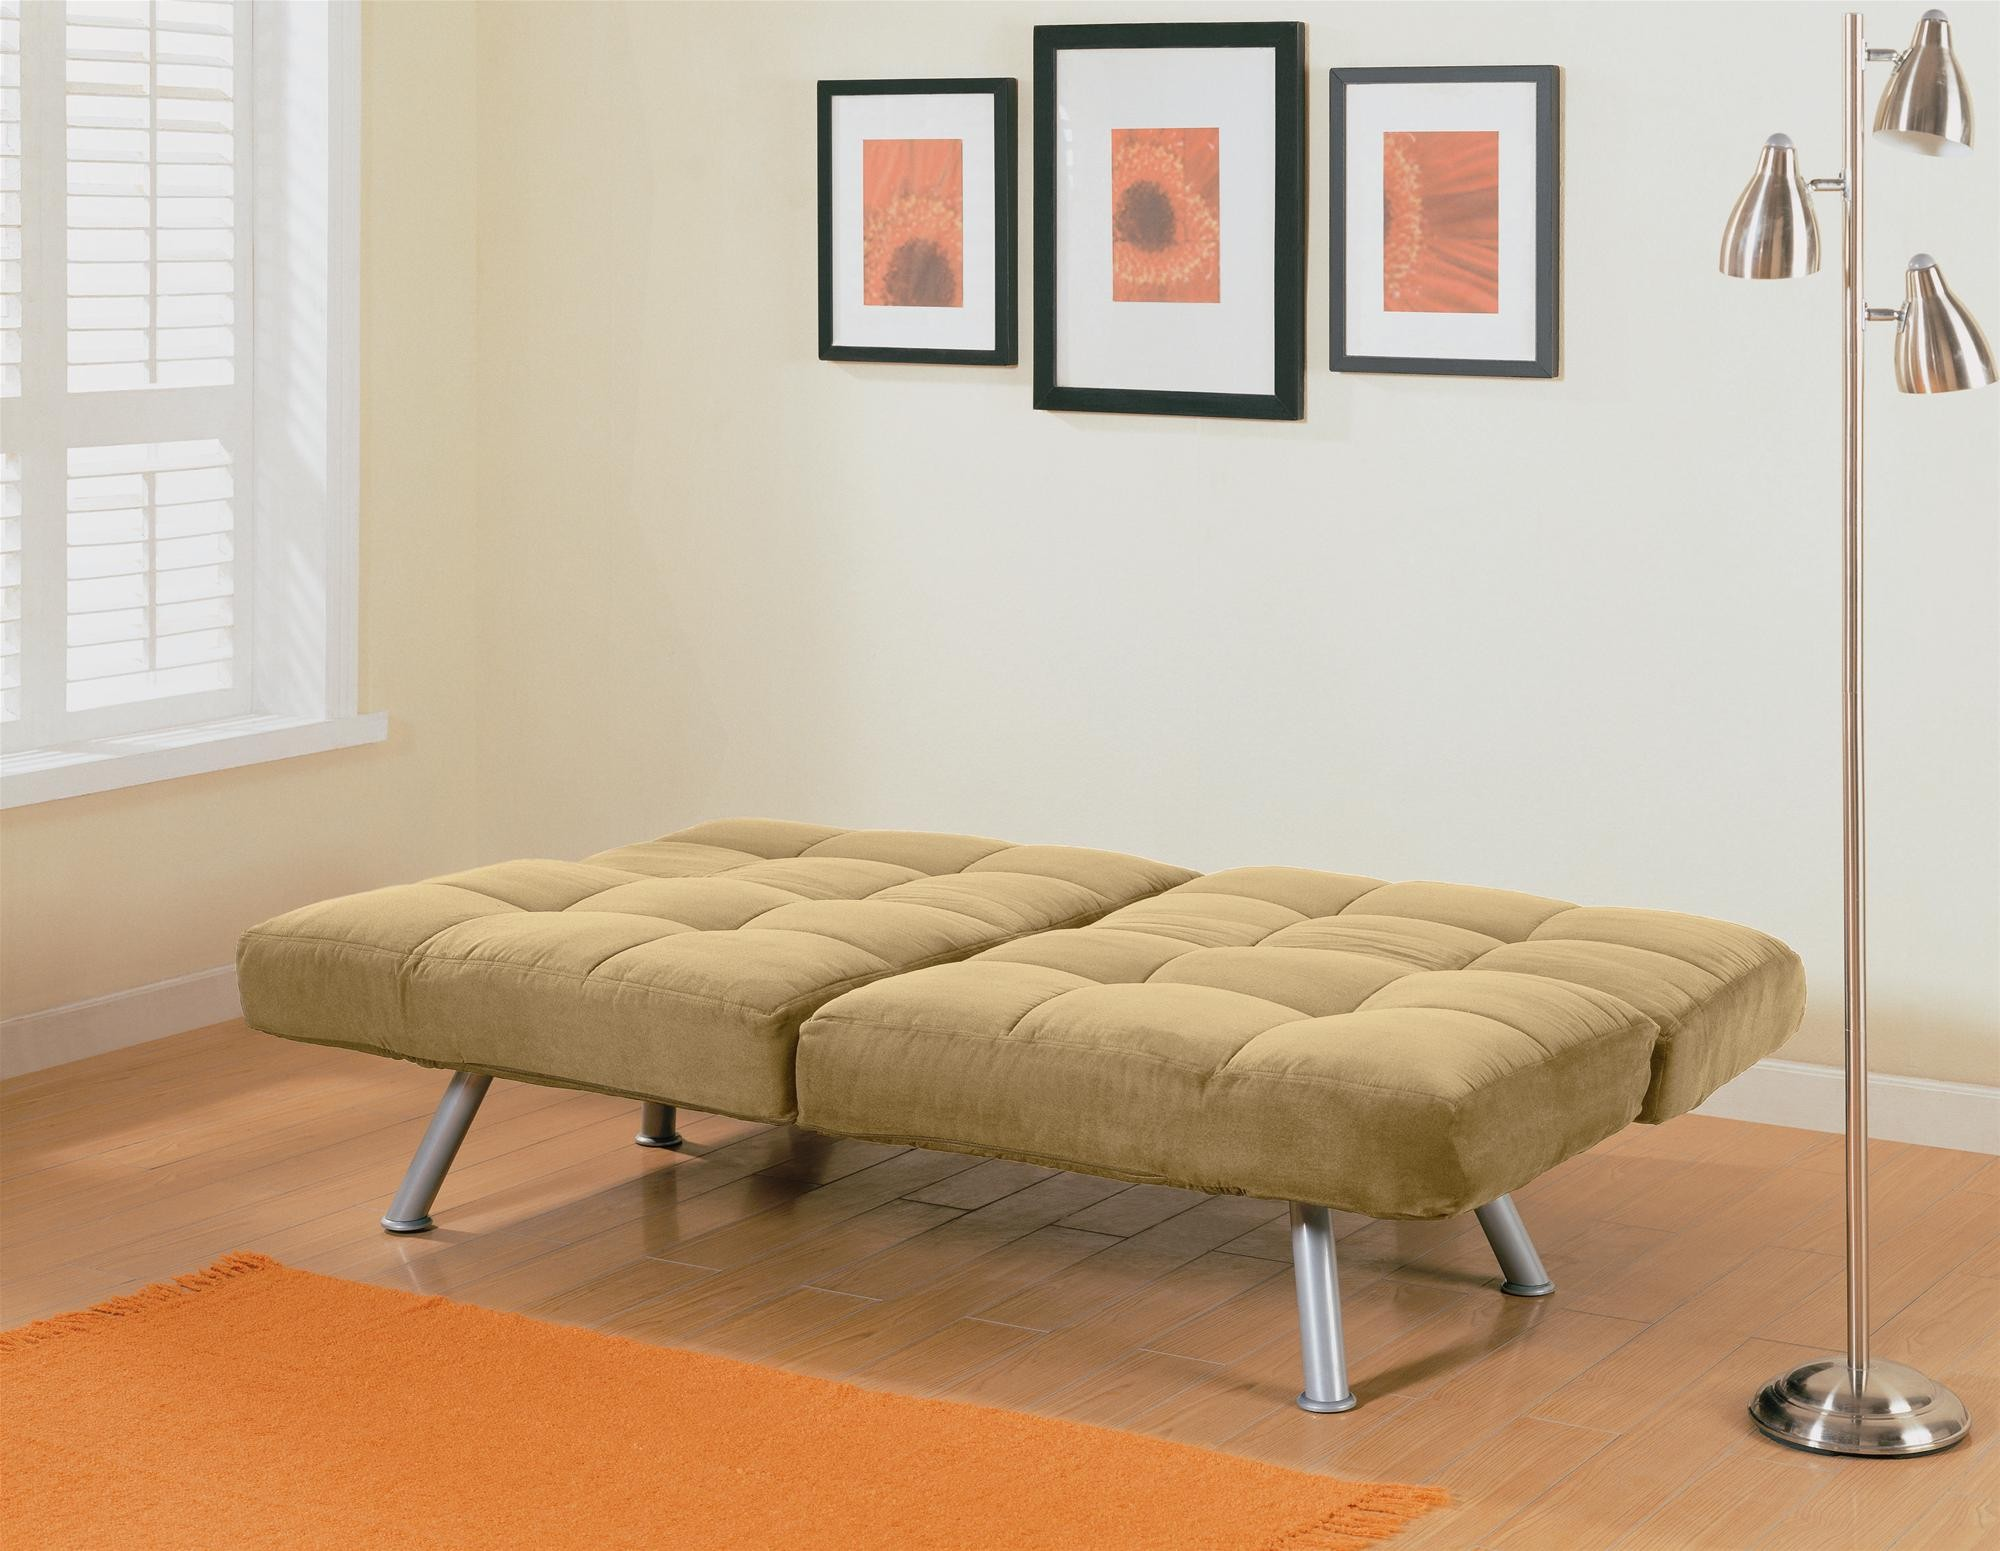 Sofa Beds For Small Spaces Also Sleeper Sofas For Small Apartement